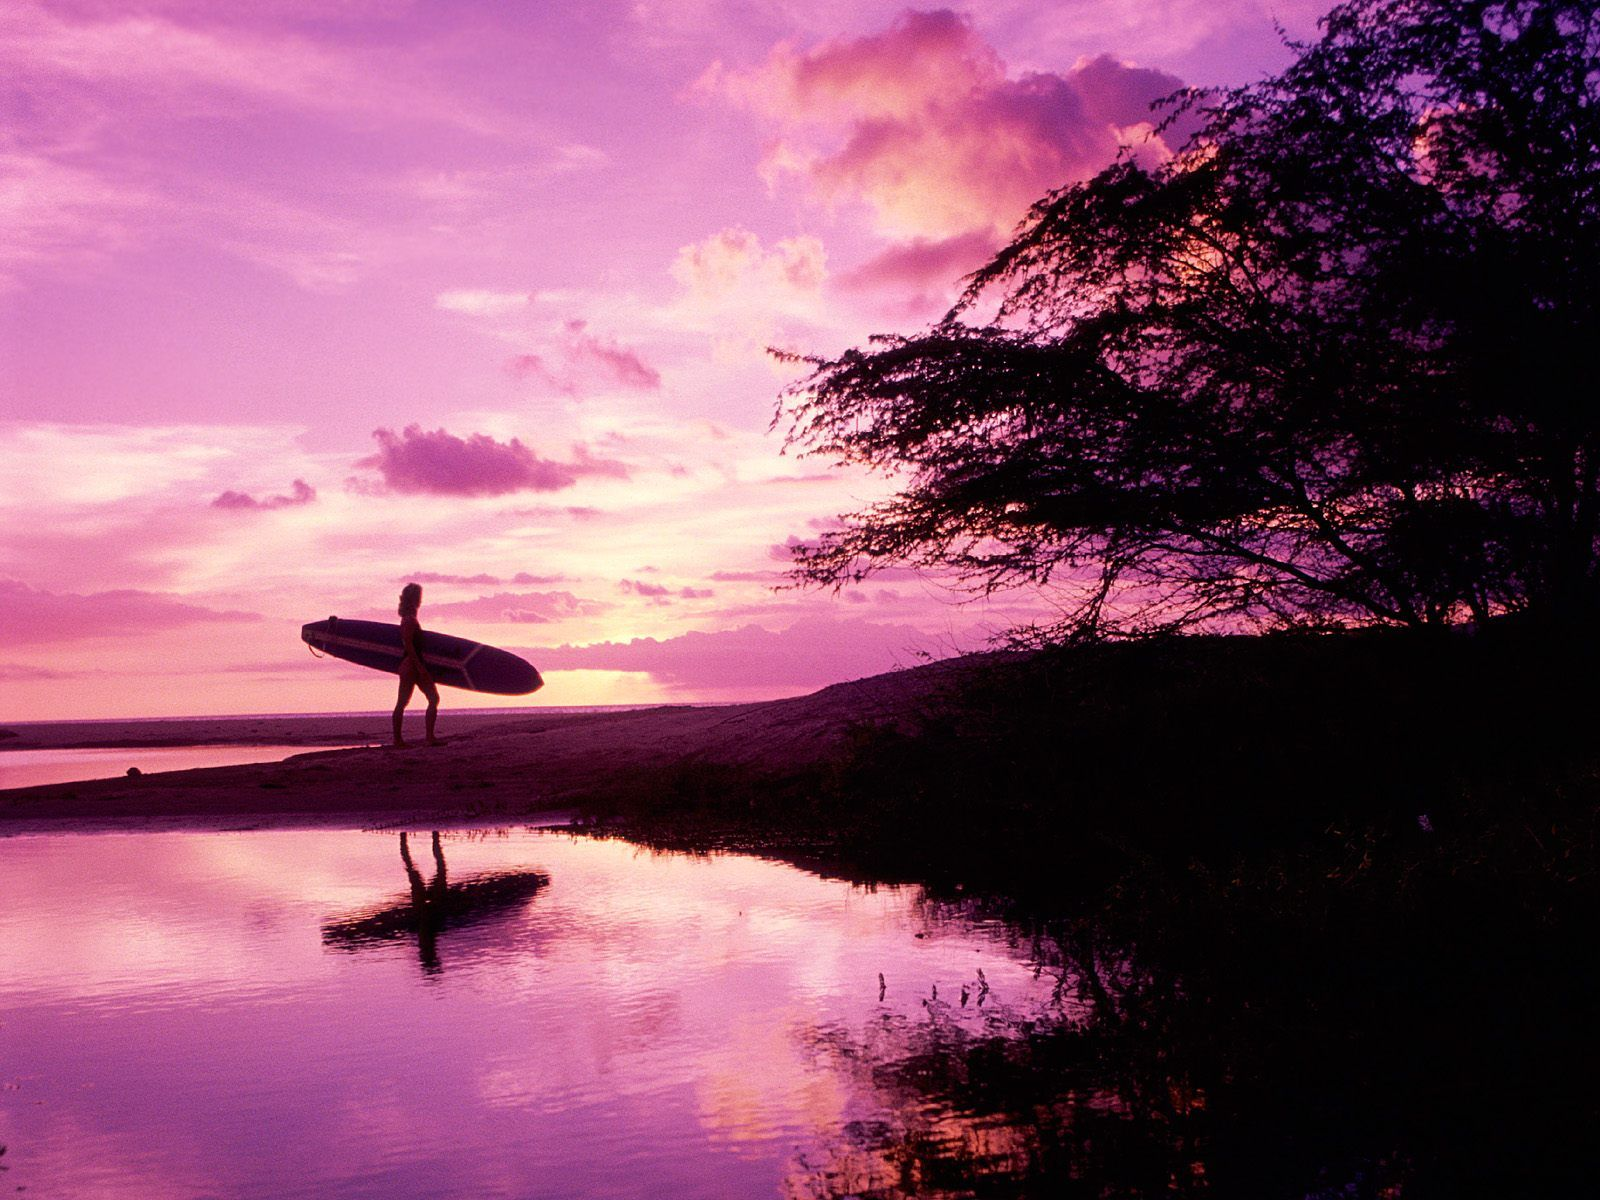 Surfer Girl Silhouette Sunset Wallpaper Maui Surfer Hawaii Wallpapers Pictures Photos And